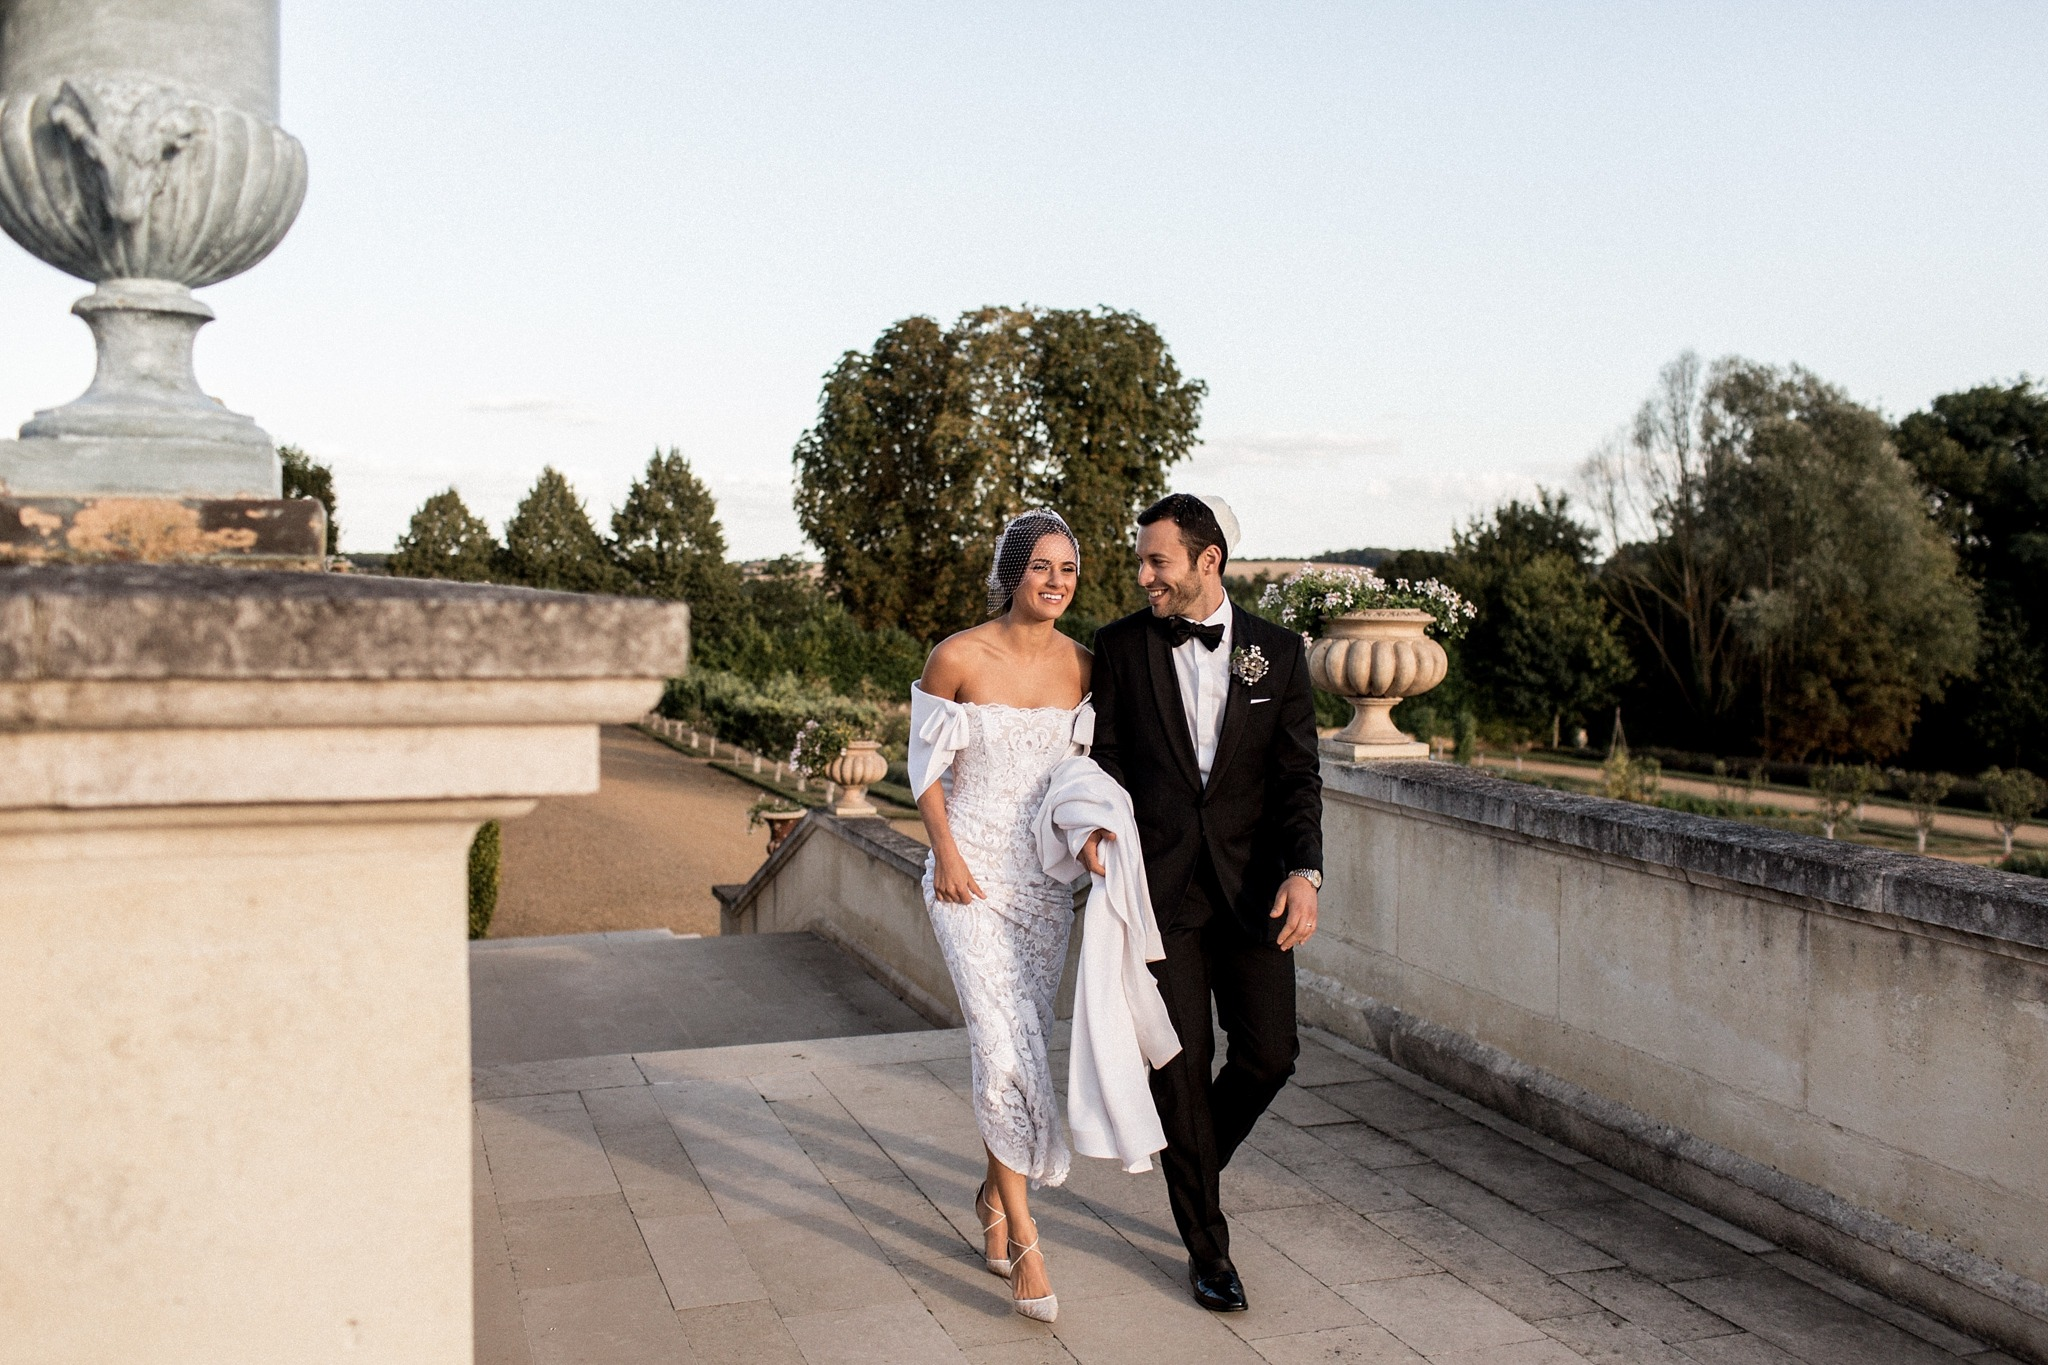 chateau-wedding-france-chanel-eric-as-seen-on-vogue-with-sarah-falugo-photographer_0103